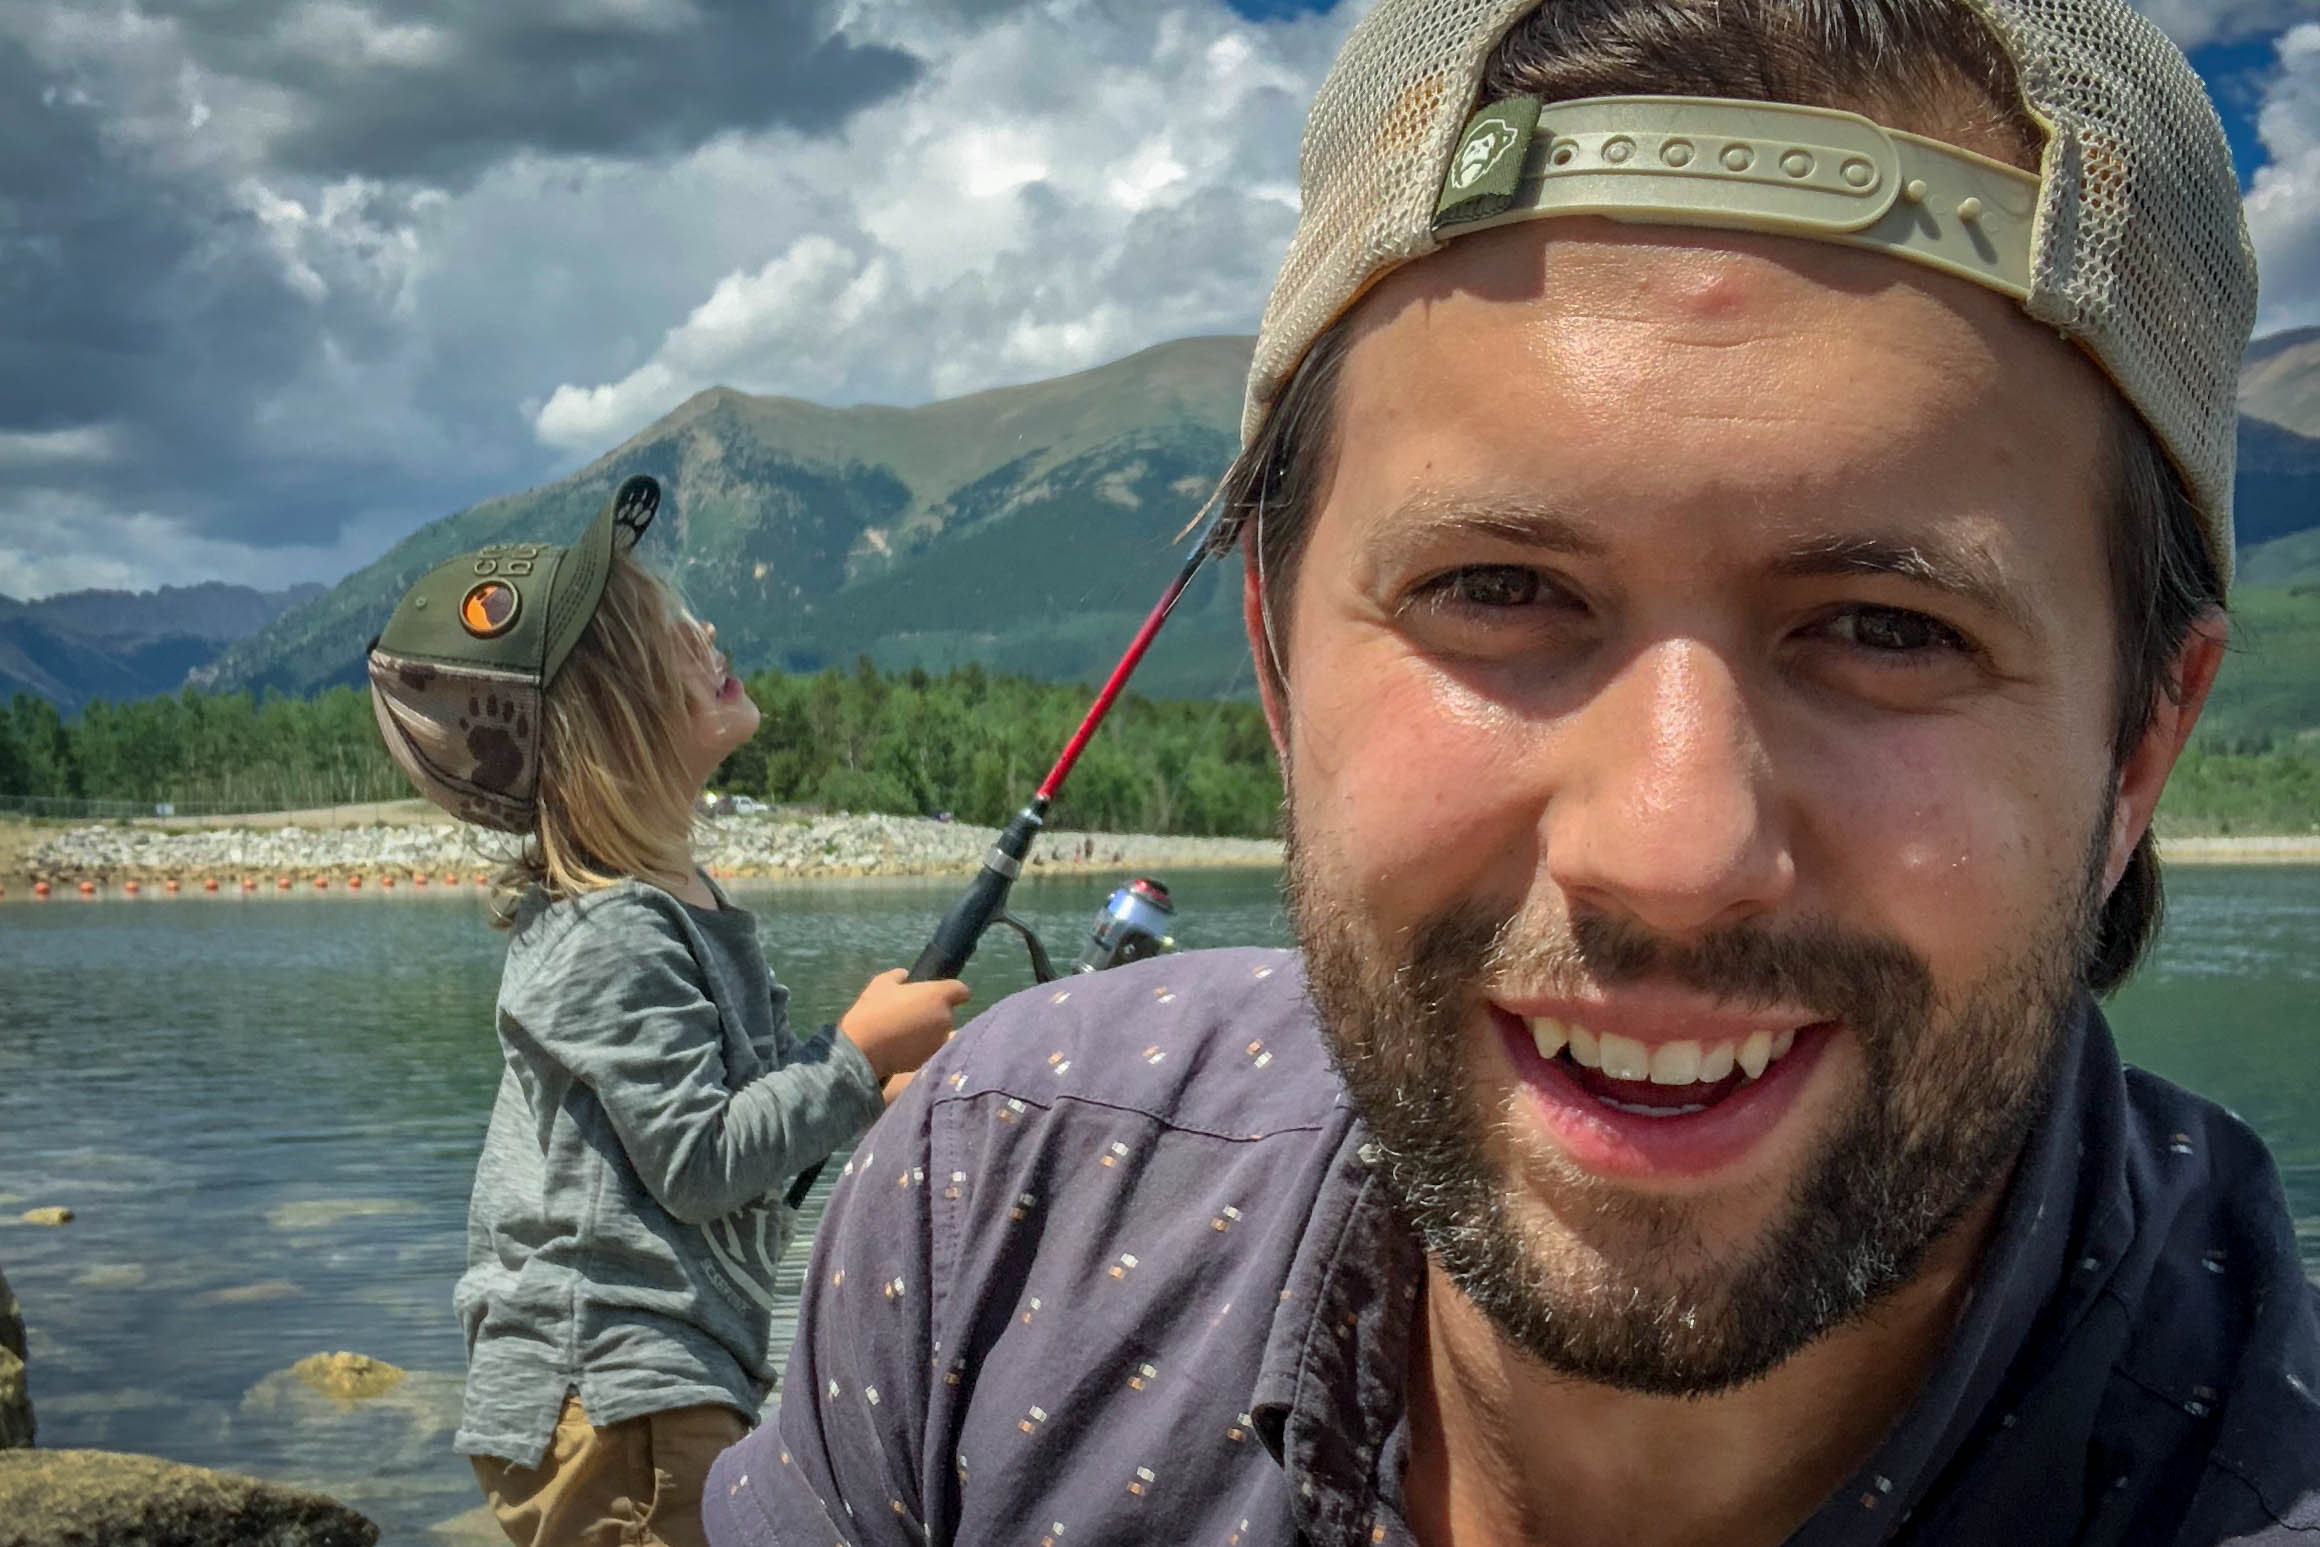 Kyle Forti and his son on a fishing trip in 2018. Forti was killed March 3, 2019 in a helicopter crash in Kenya along with three other Americans and the Kenyan pilot.